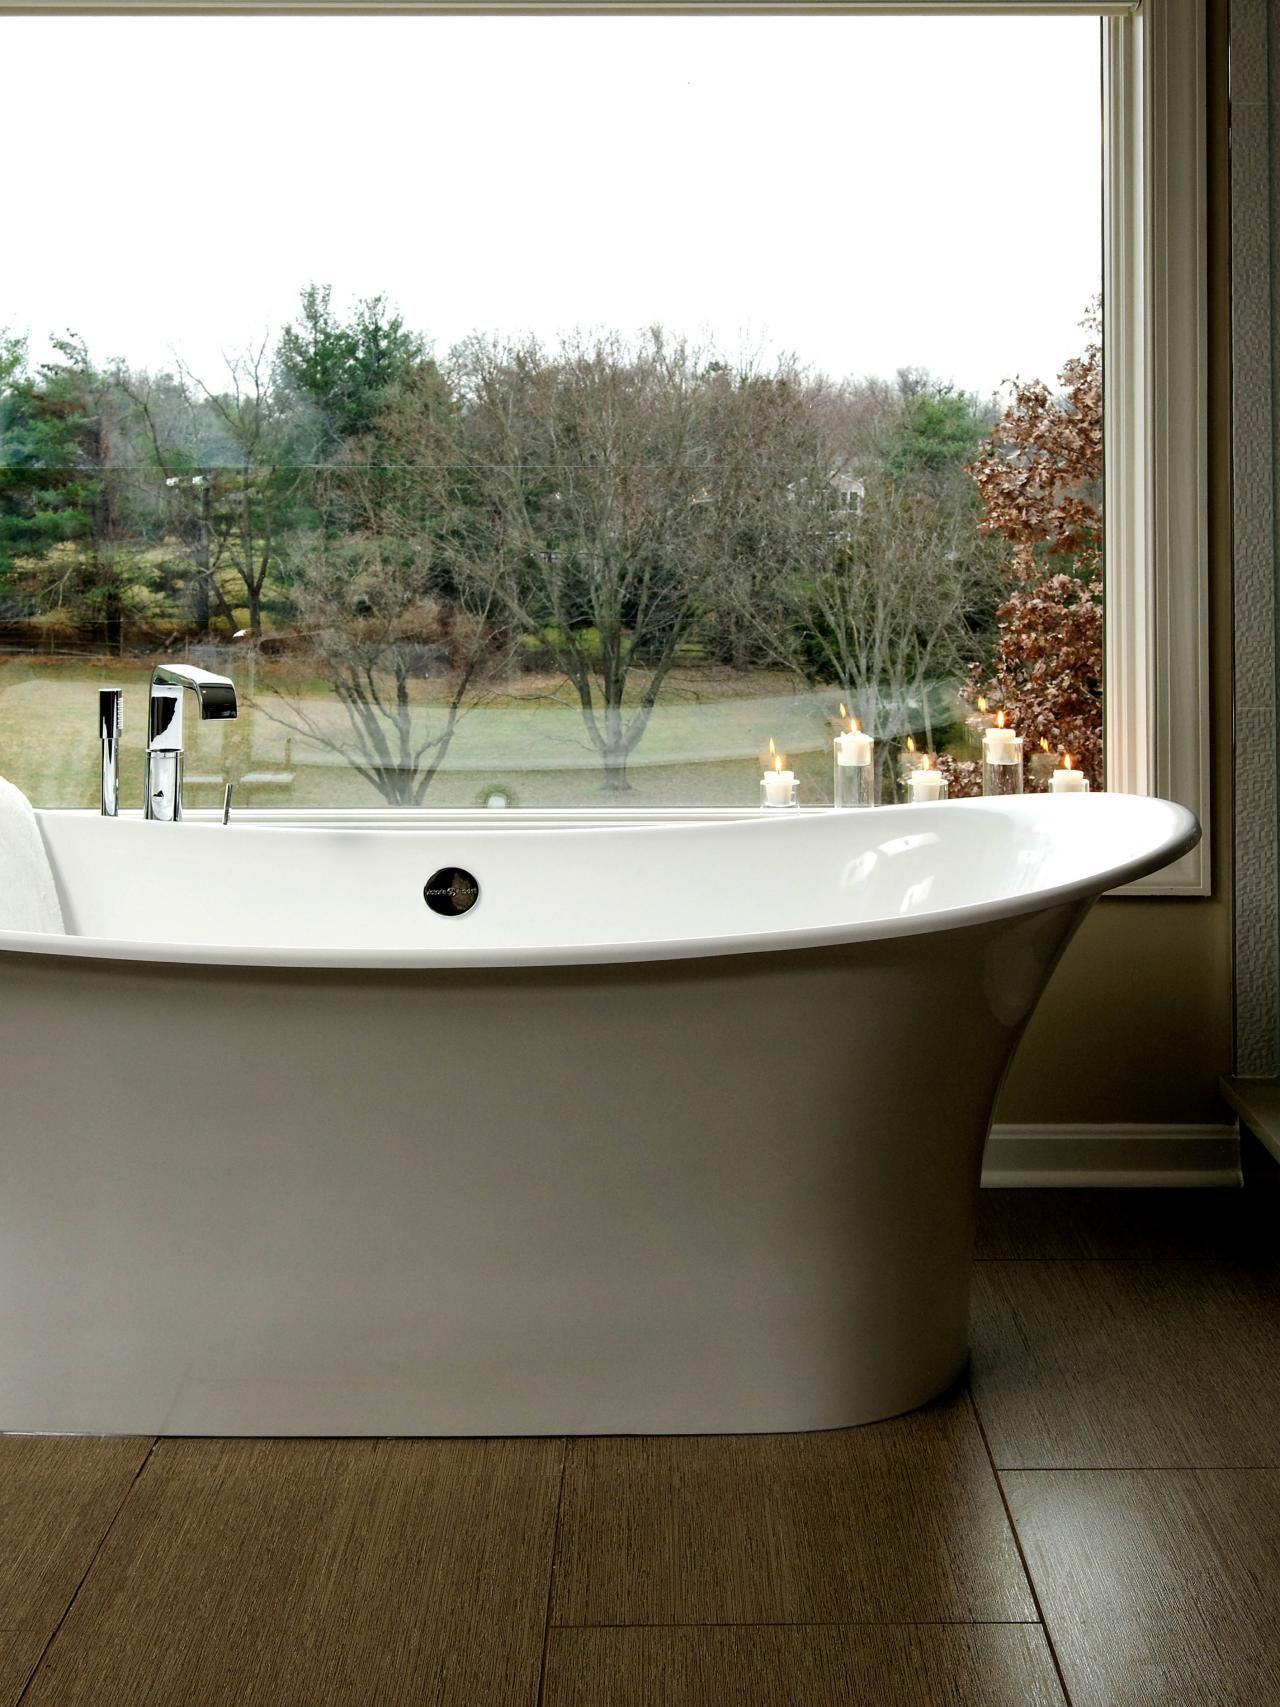 Hgtv Has Inspirational Pictures And Expert Tips On Infinity Bathtub